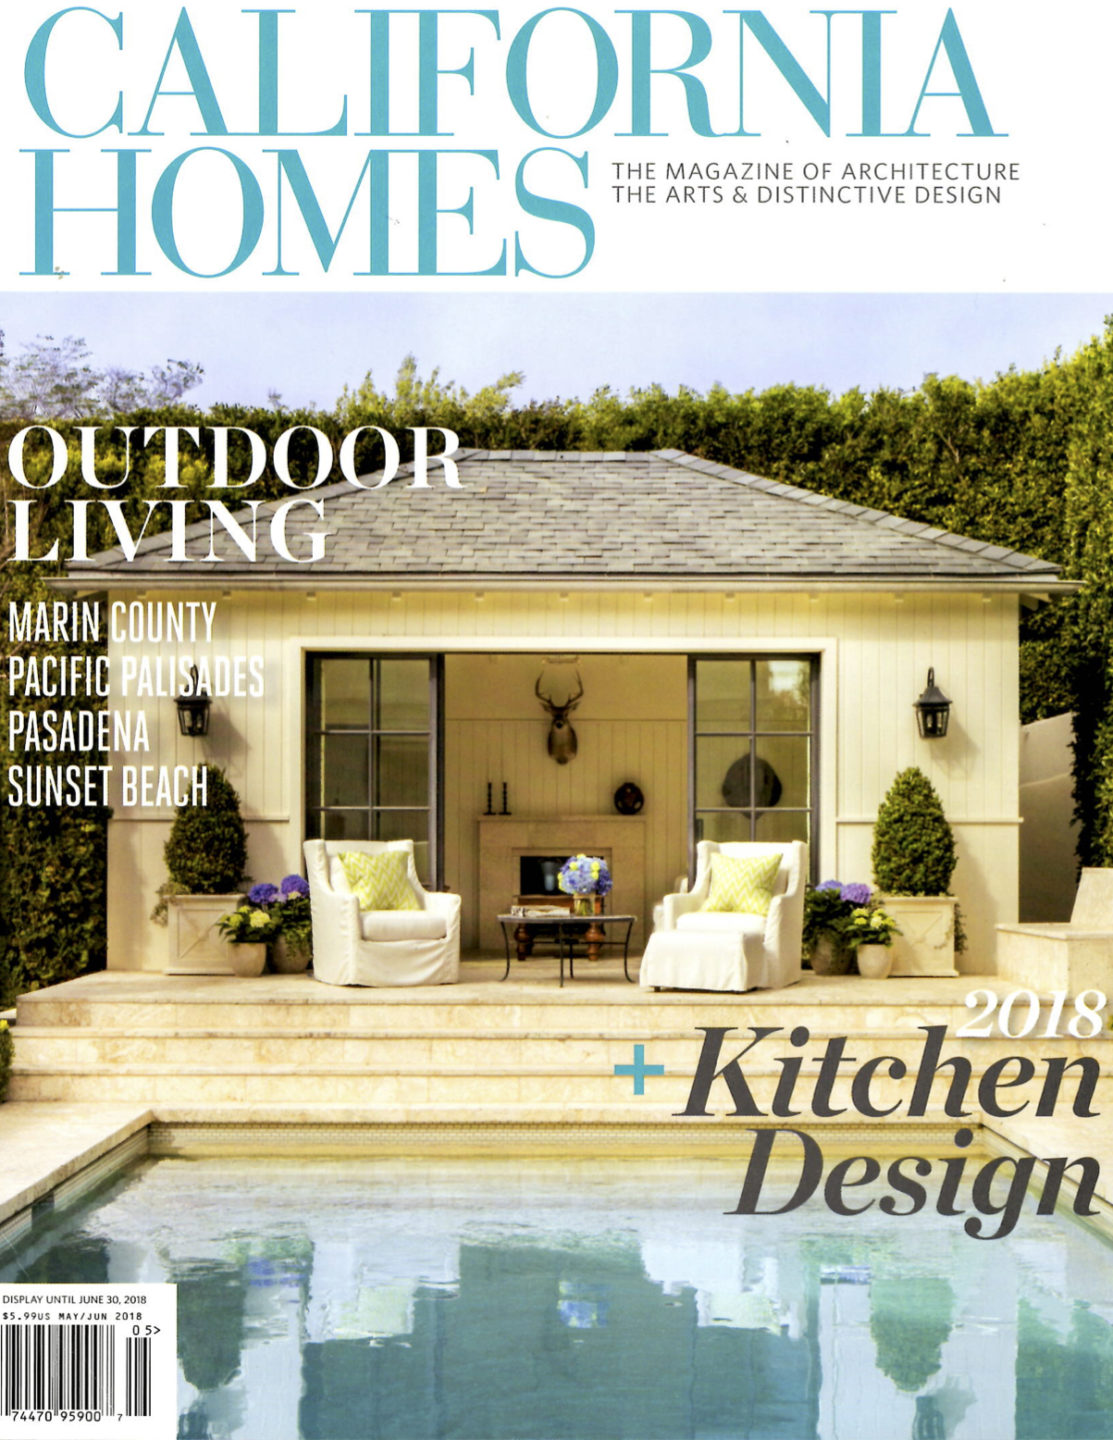 Studio_William_Hefner_press_cover_CaliforniaHomes_May2018